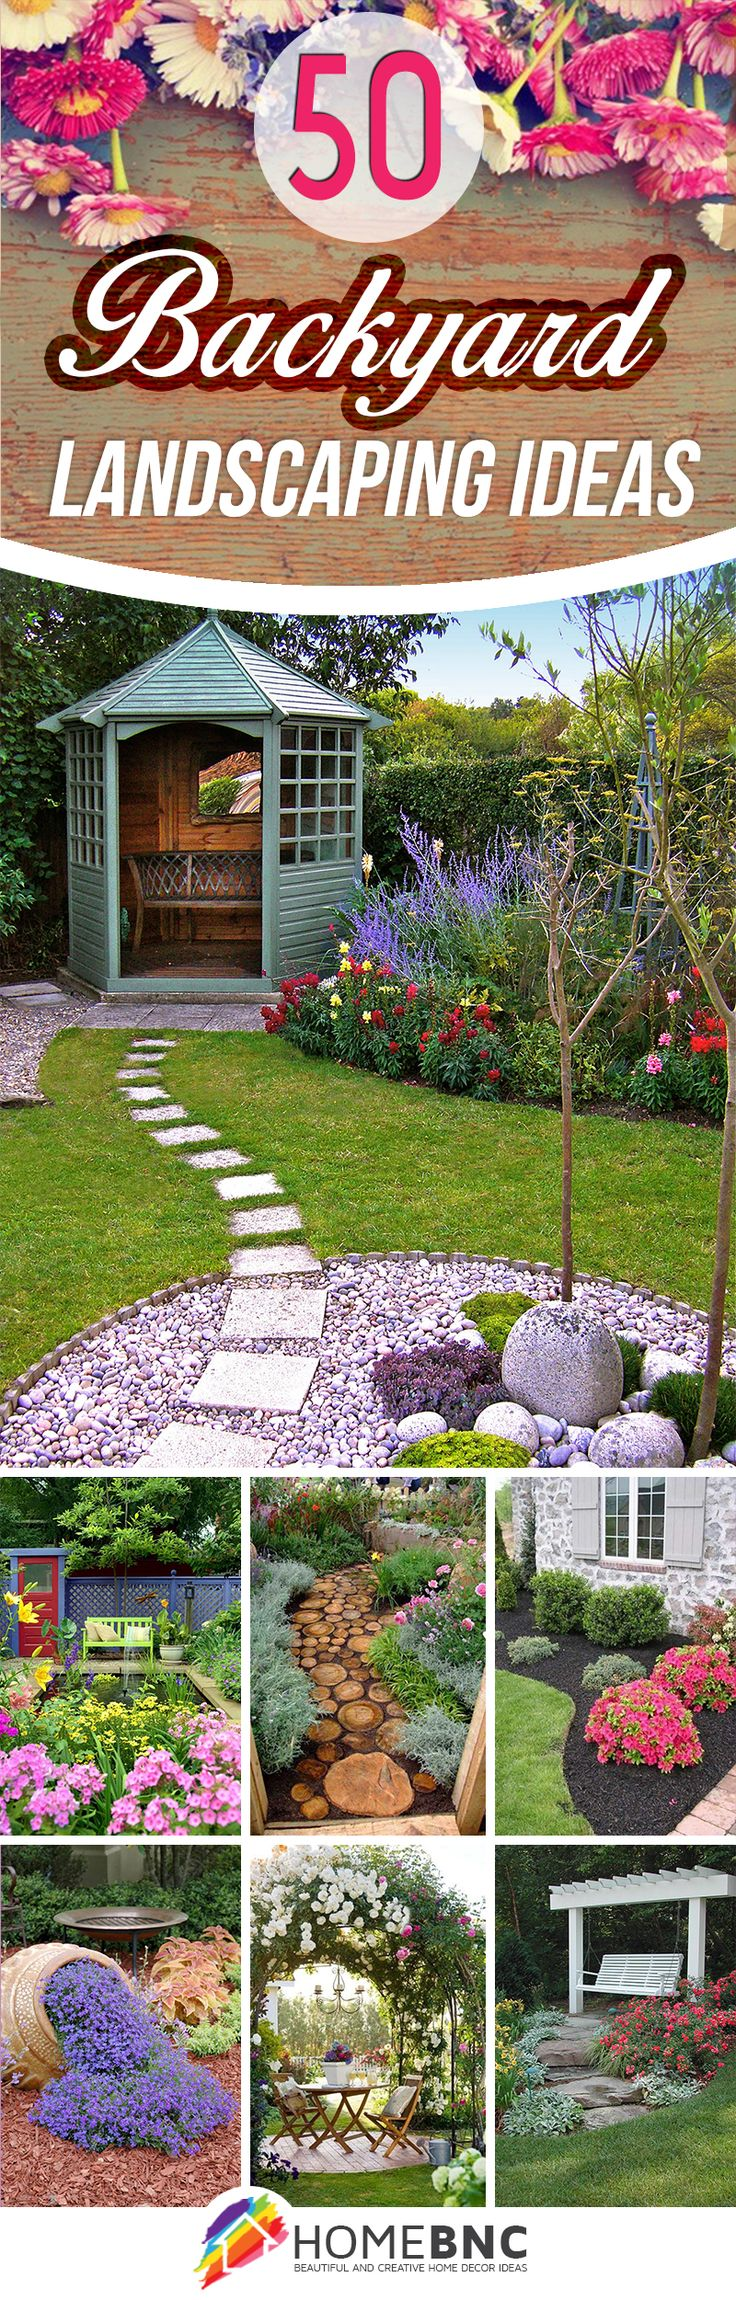 Funky backyard garden ideas - 50 Backyard Landscaping Ideas That Will Make You Feel At Home